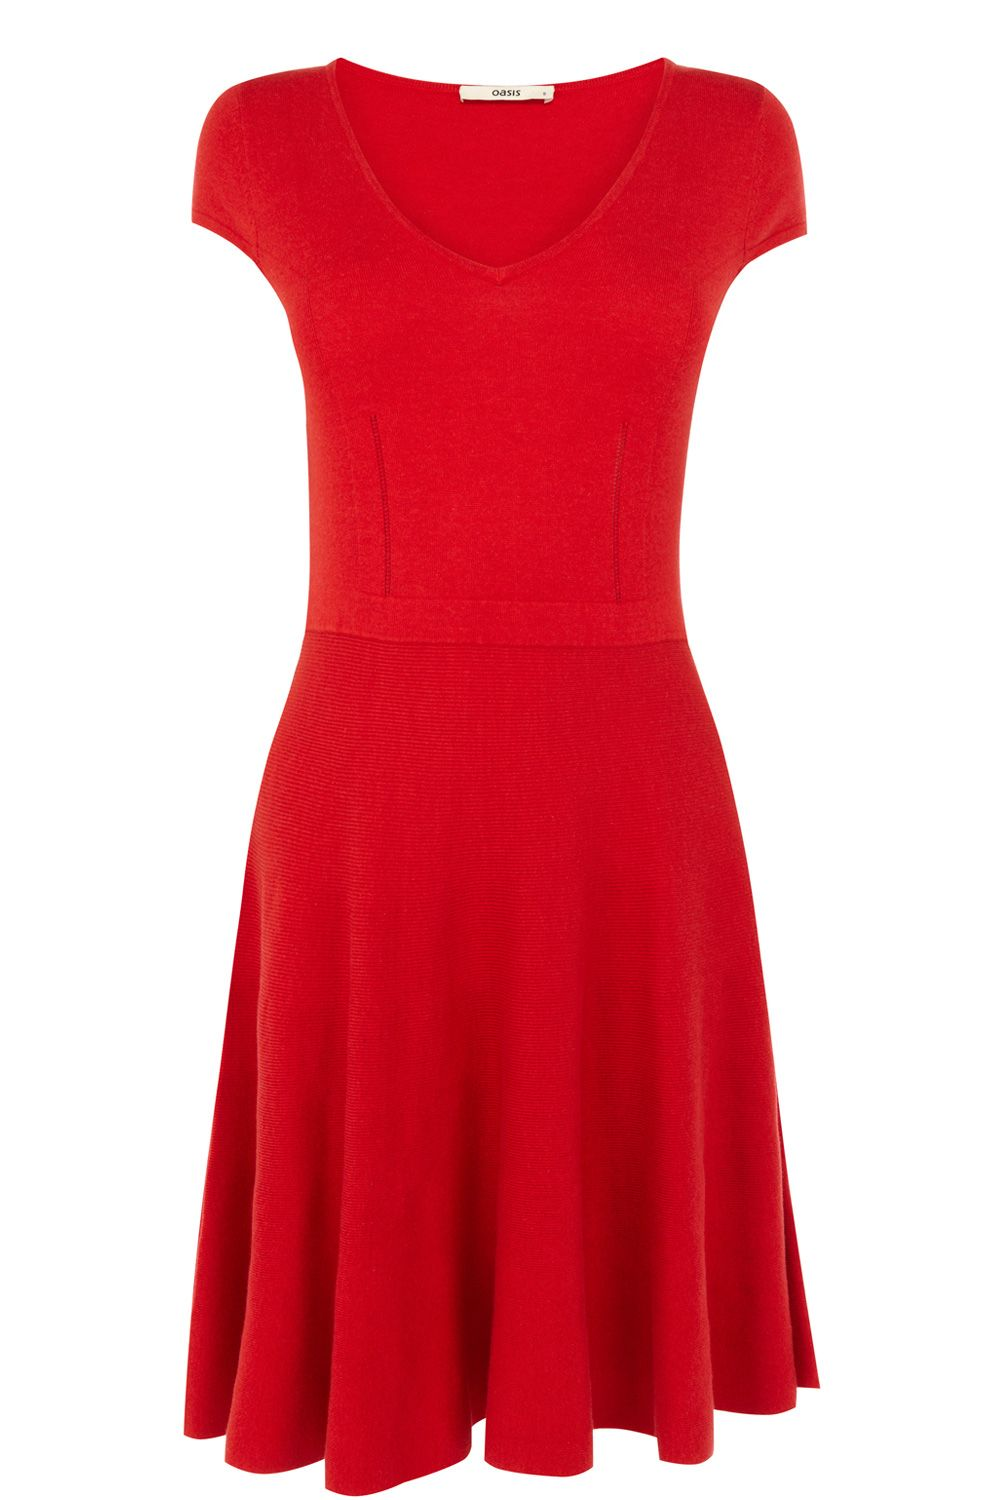 Fit and flare v neck dress